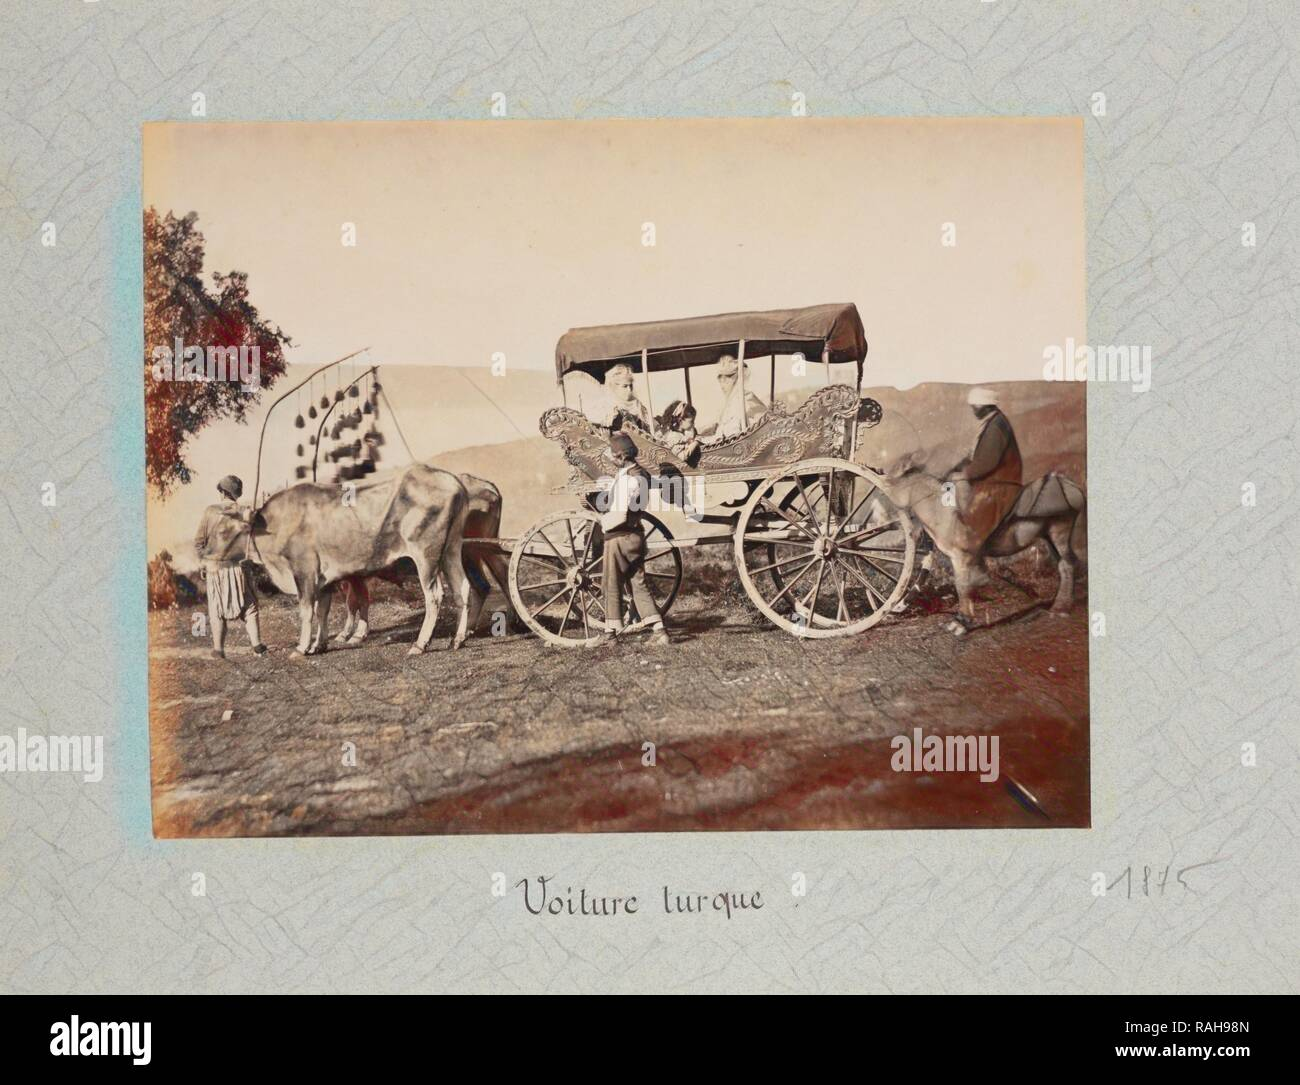 Voiture turque, Gigord, Pierre de, 1852-1950. Reimagined by Gibon. Classic art with a modern twist reimagined - Stock Image